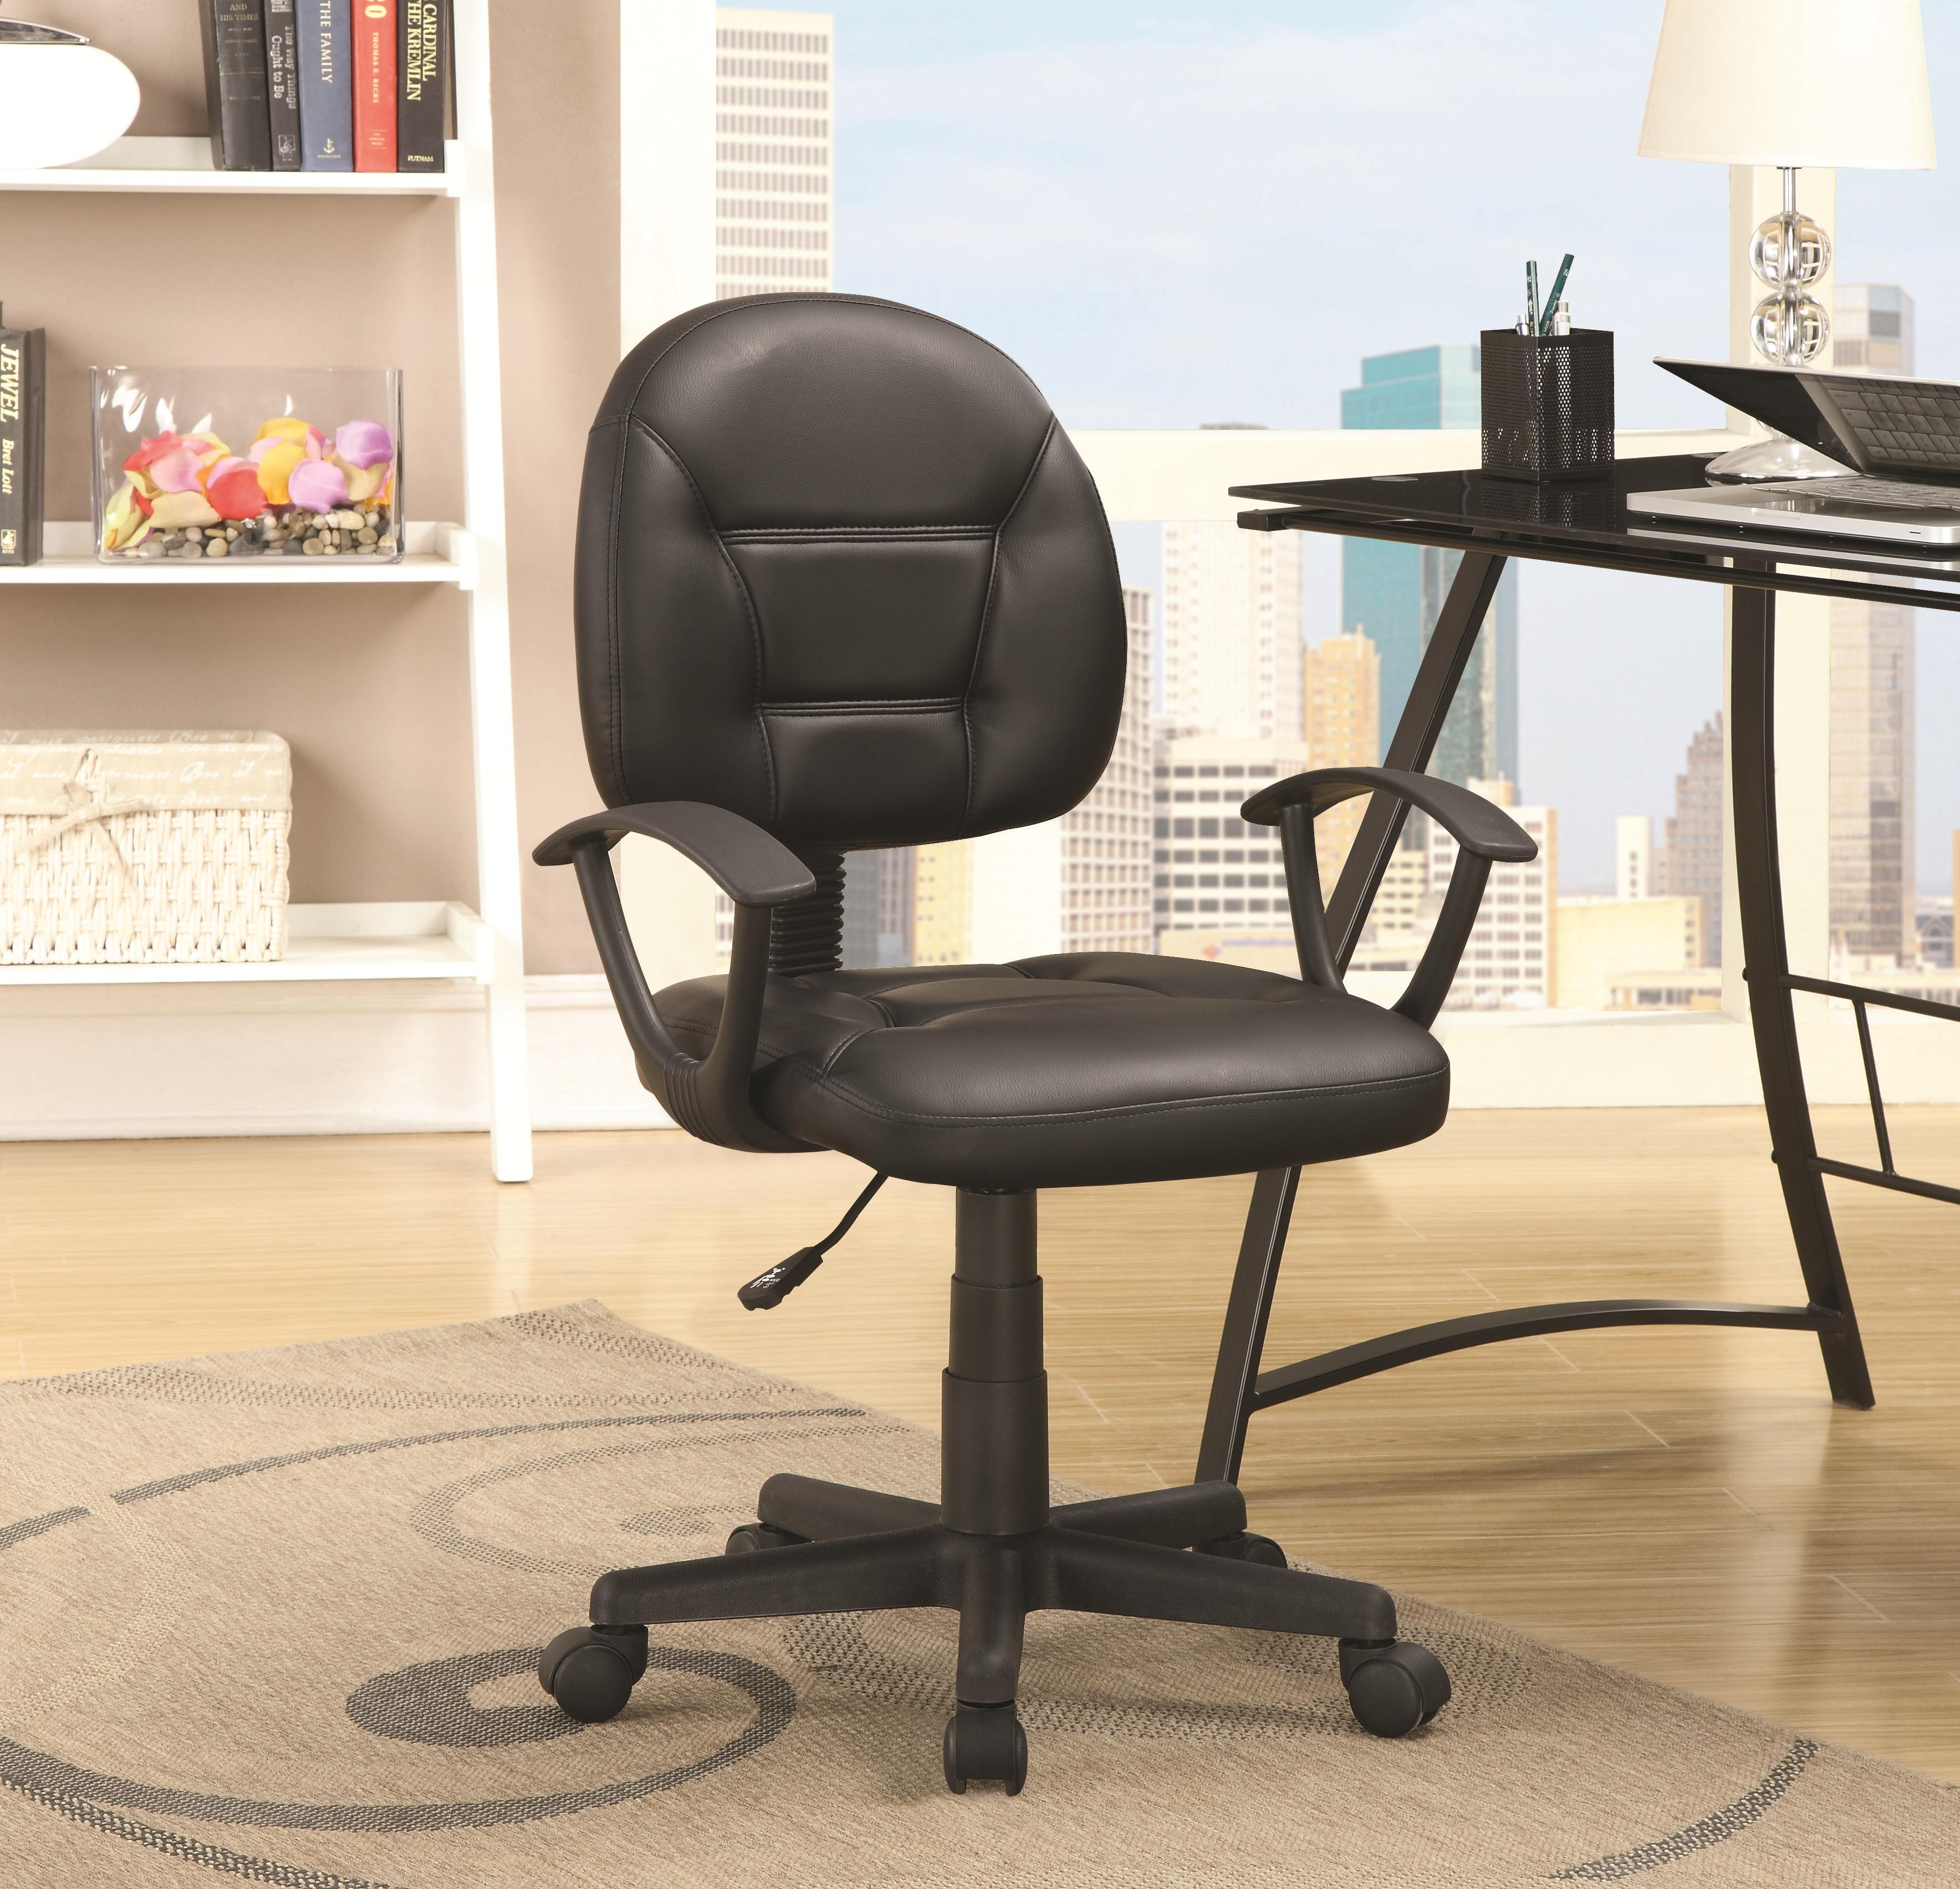 Coaster Office Chairs 800178 Black Office Chair